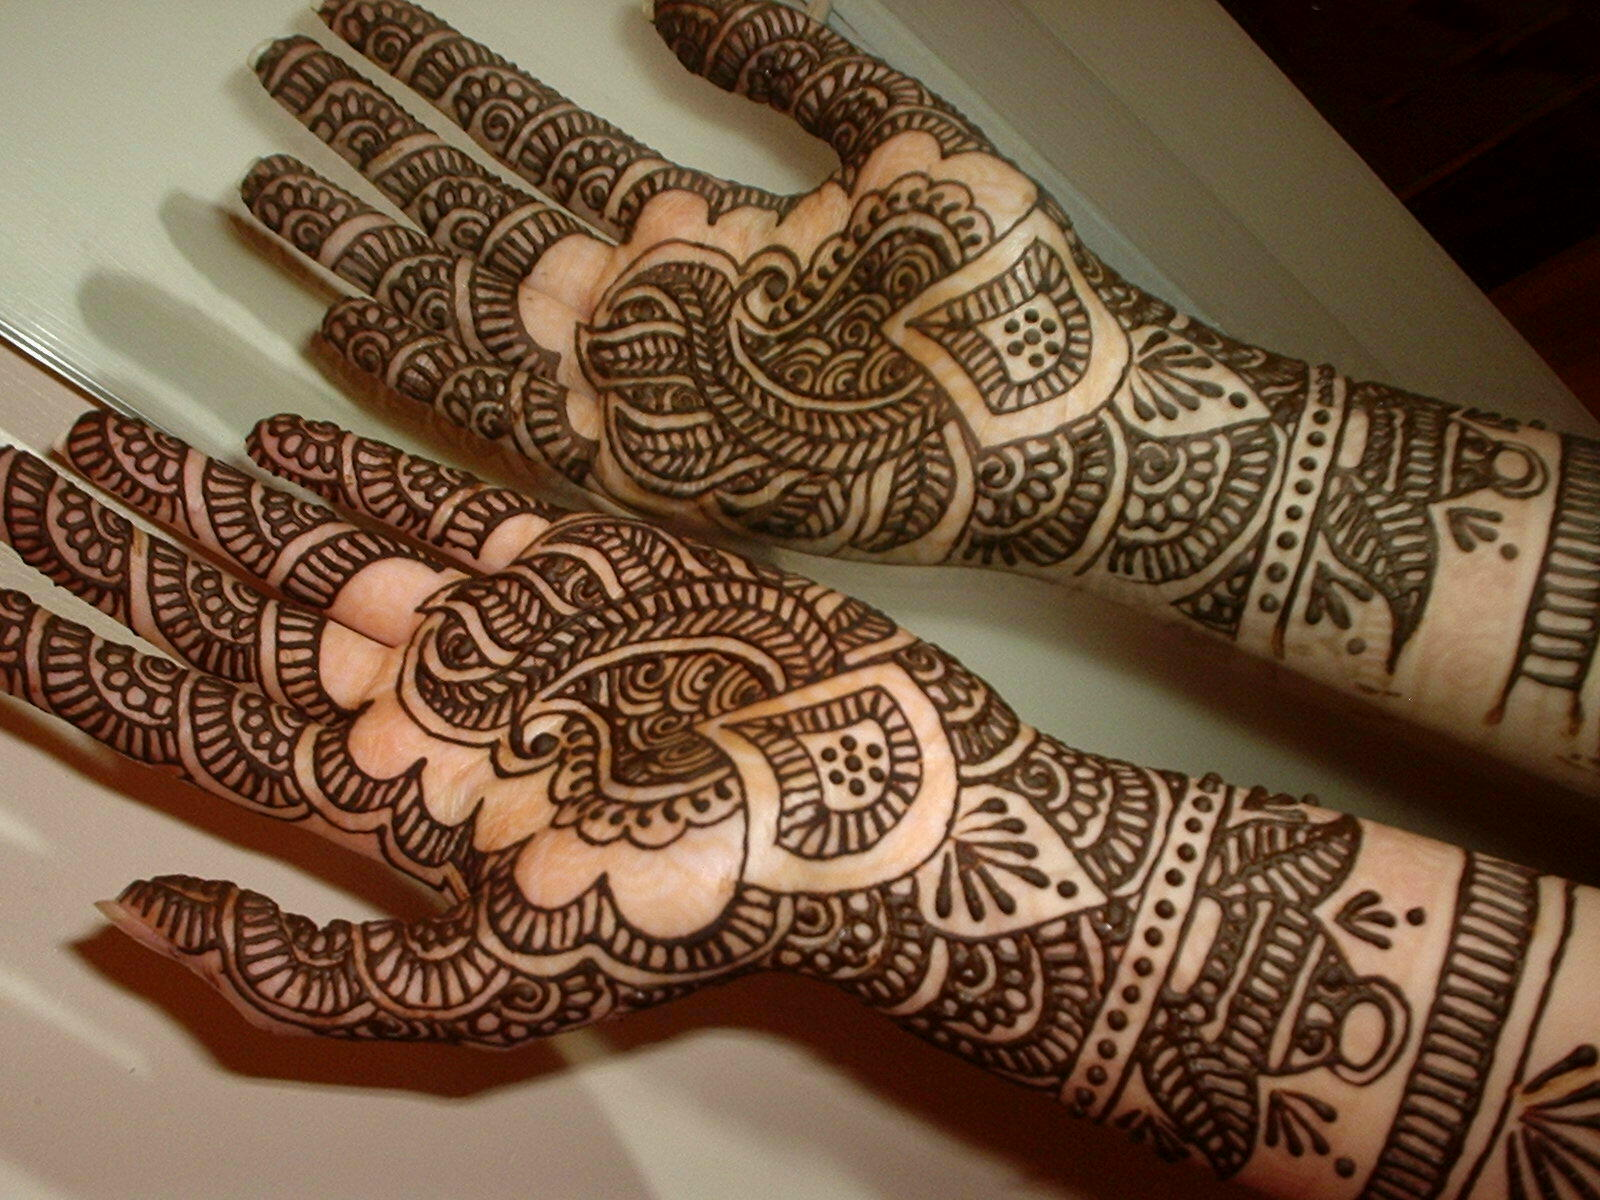 Mehndi Designs Hands Images : Mehndi designs for hands arabic henna